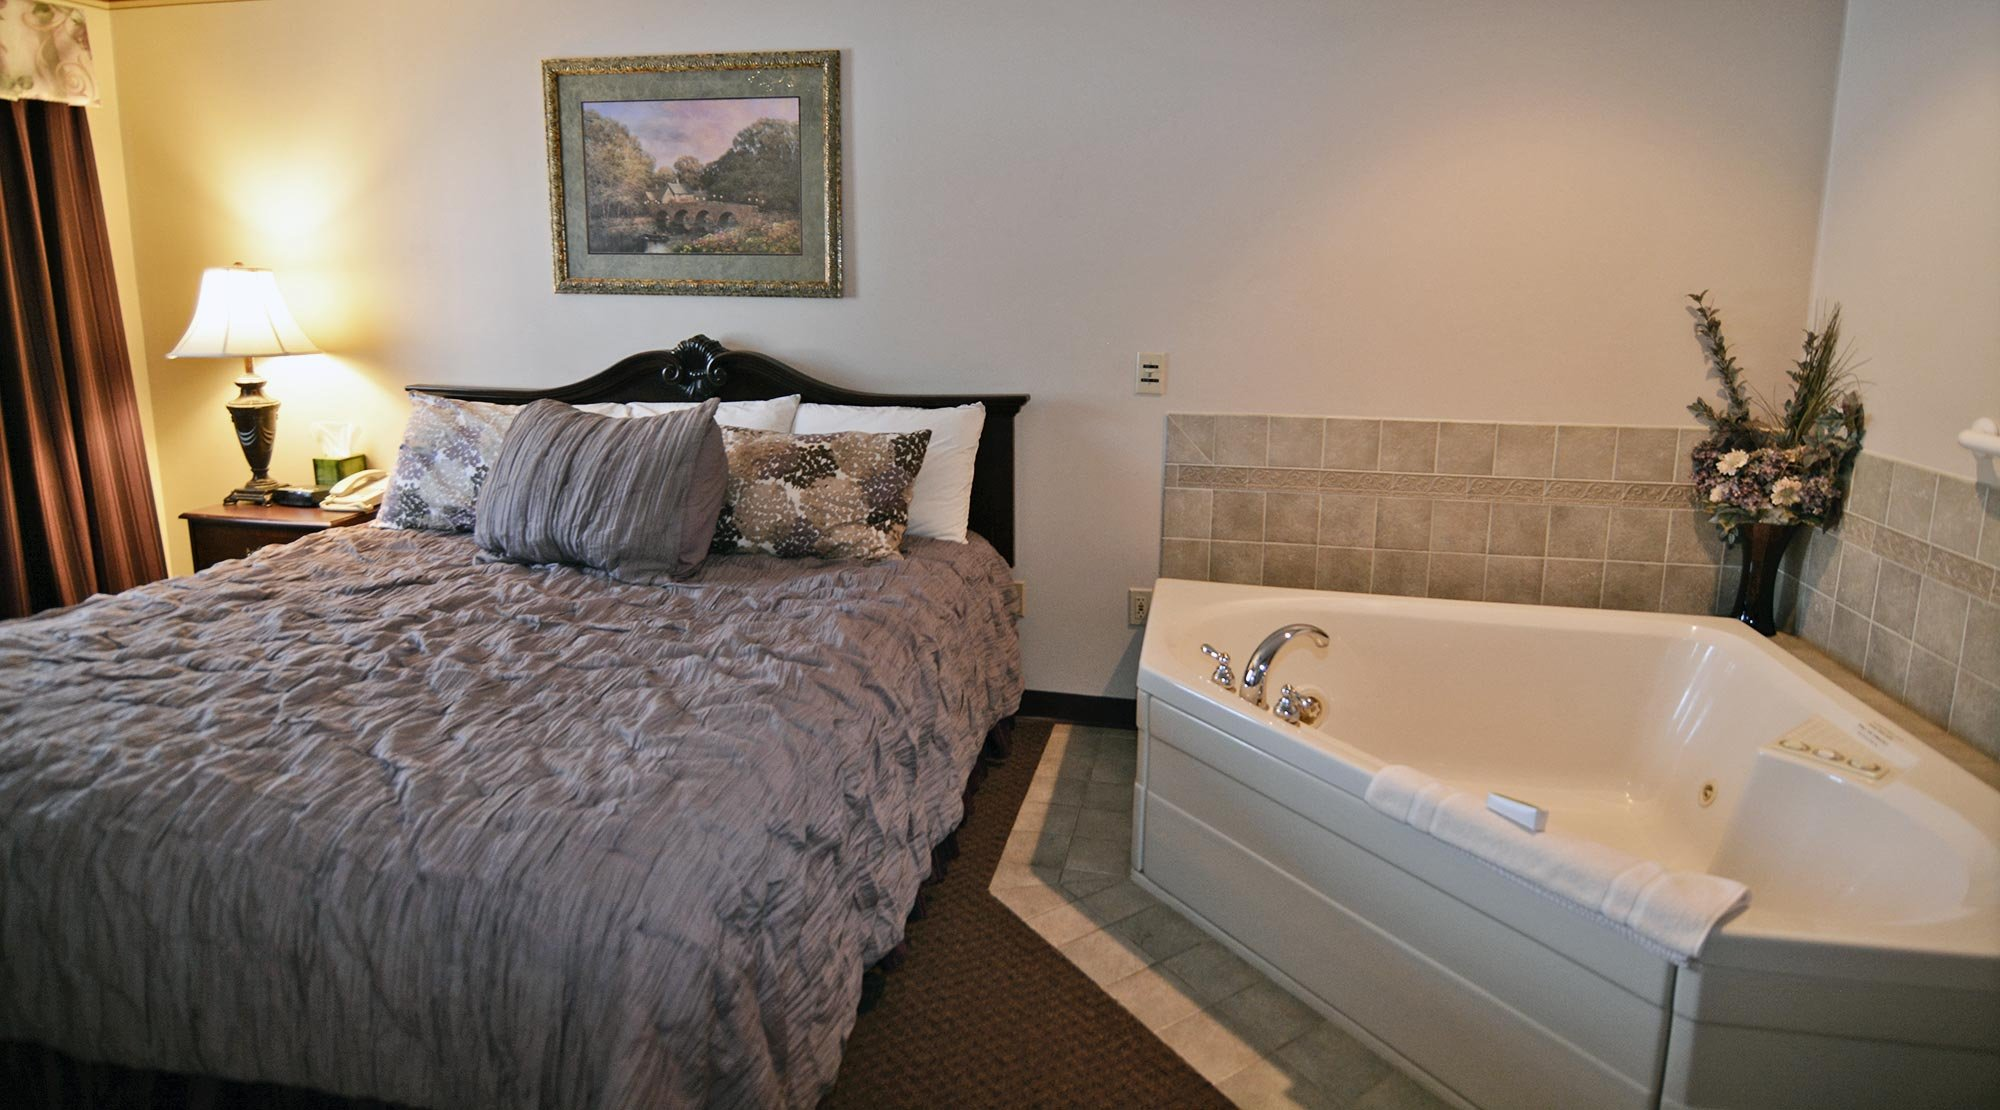 King Bed Near Jacuzzi Tub